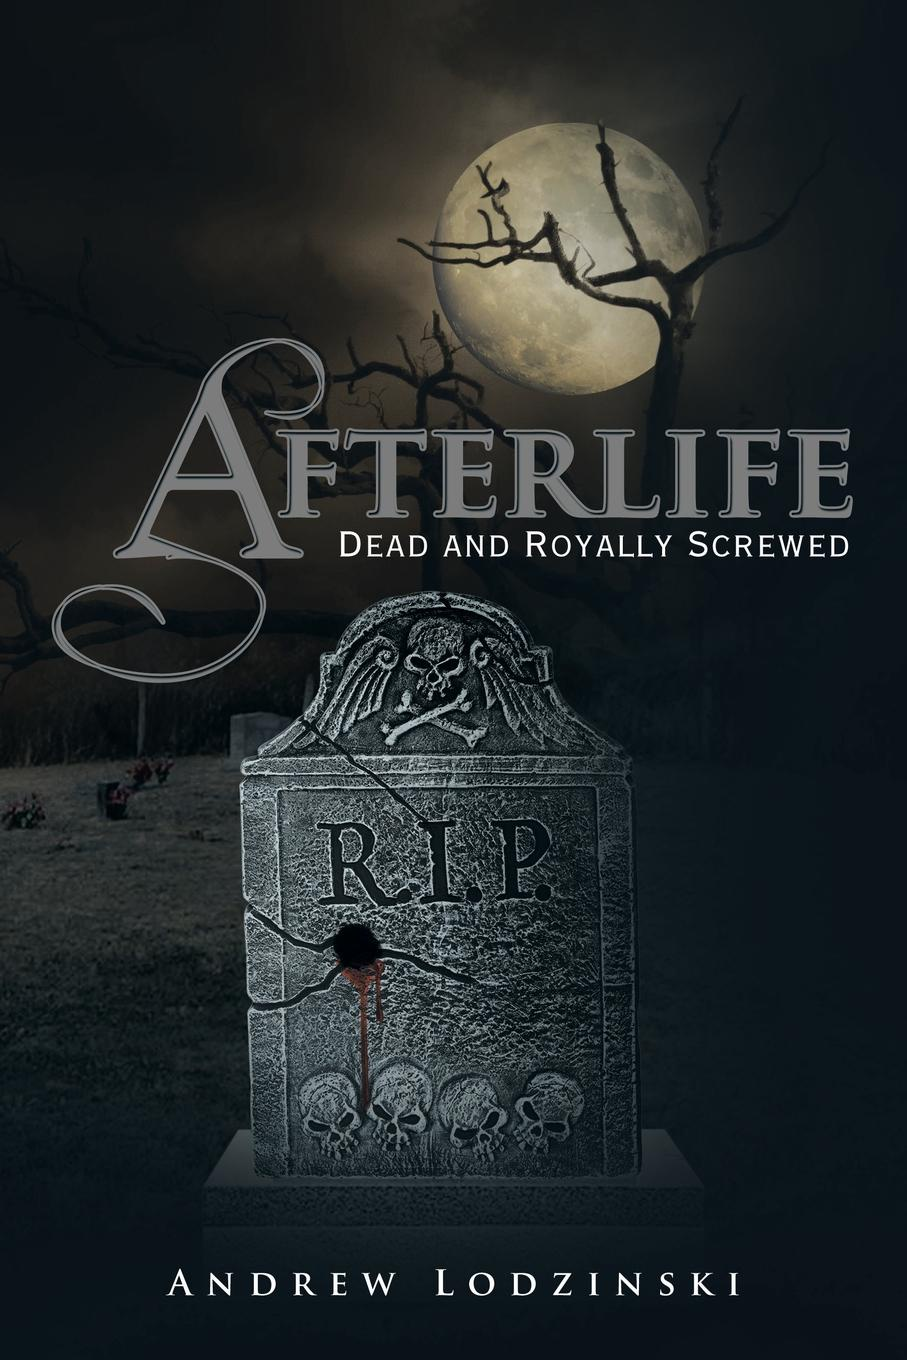 Andrew Lodzinski Afterlife Dead and Royally Screwed. Dead and Royally Screwed dead london